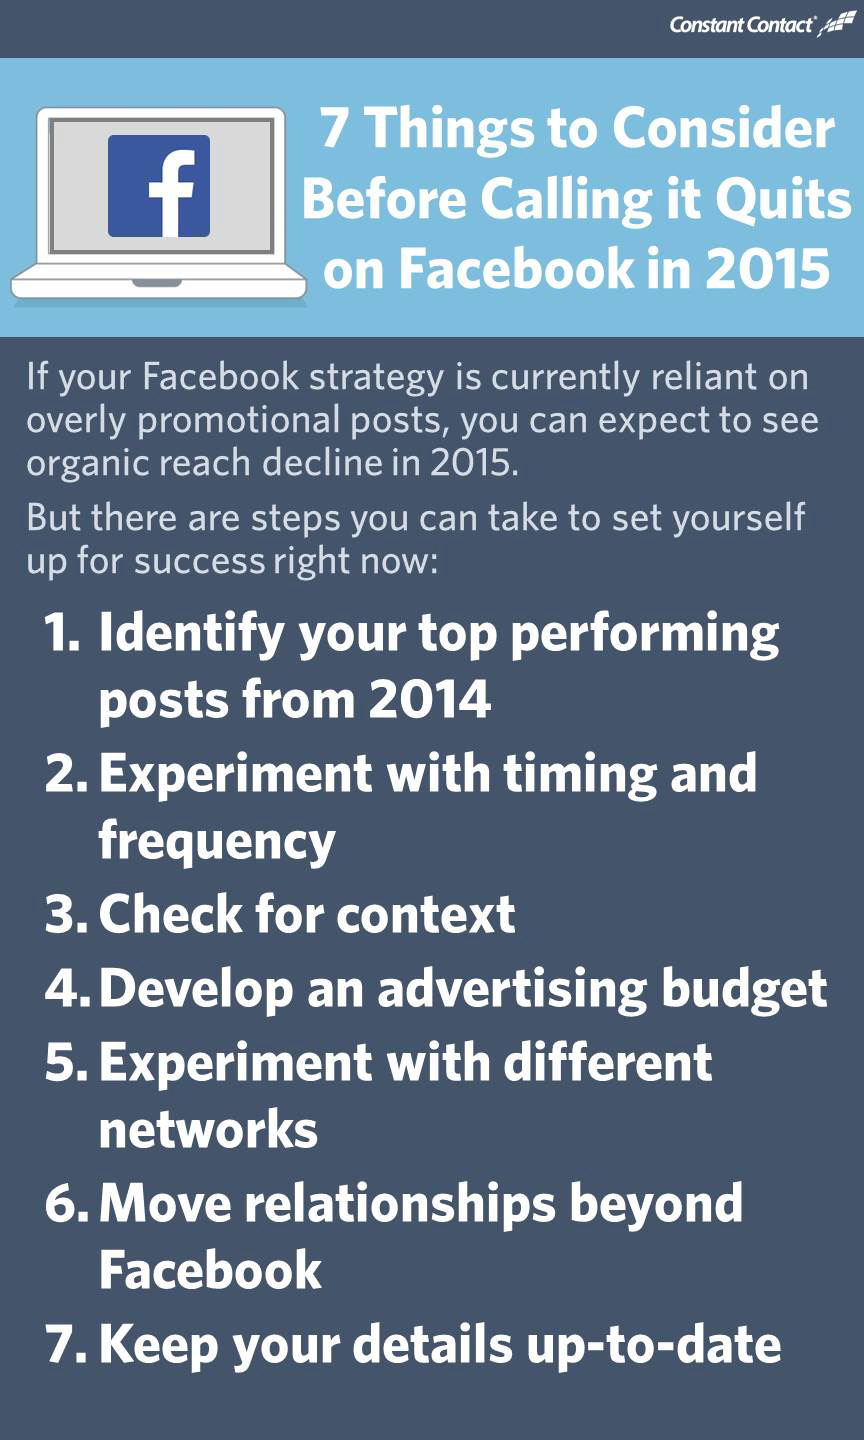 Things to Consider Before Calling it Quits on Facebook in 2015 (5)